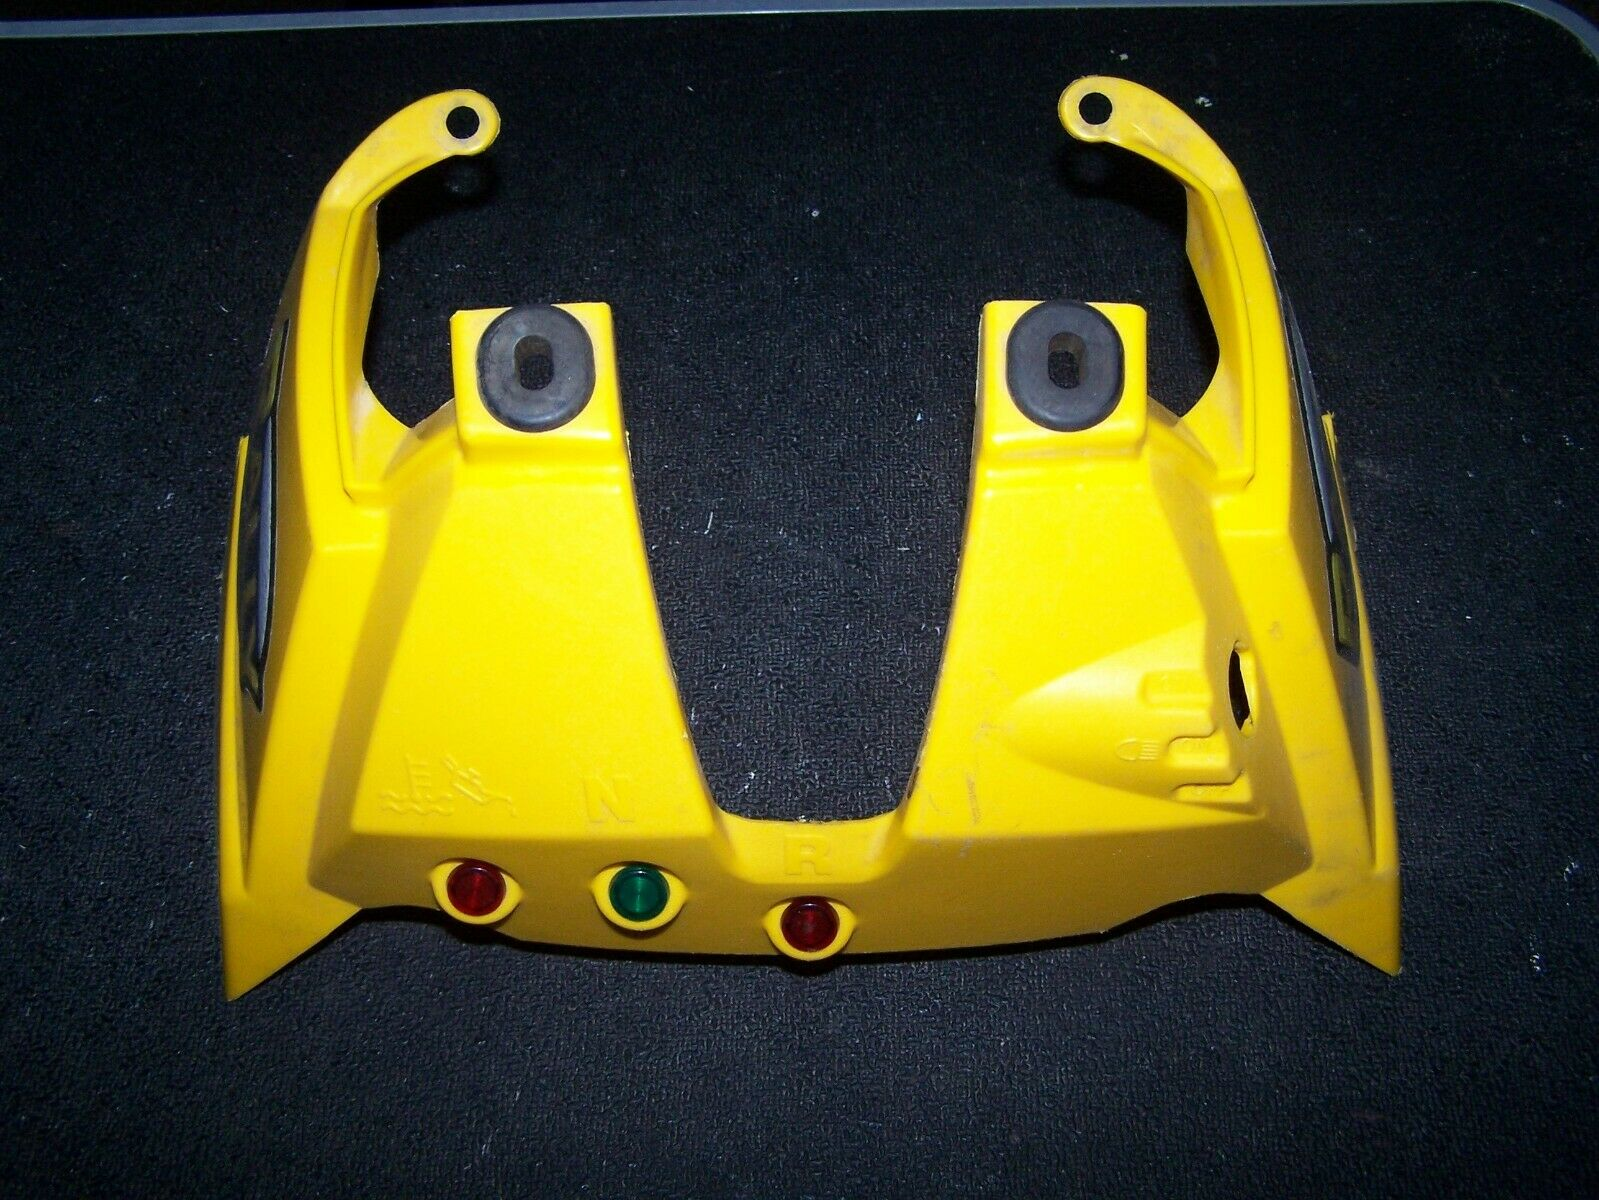 CAN AM BOMBARDIER RALLY 175 200 INDICATORS COVER HANDLE BAR DASH BOARD YELLOW